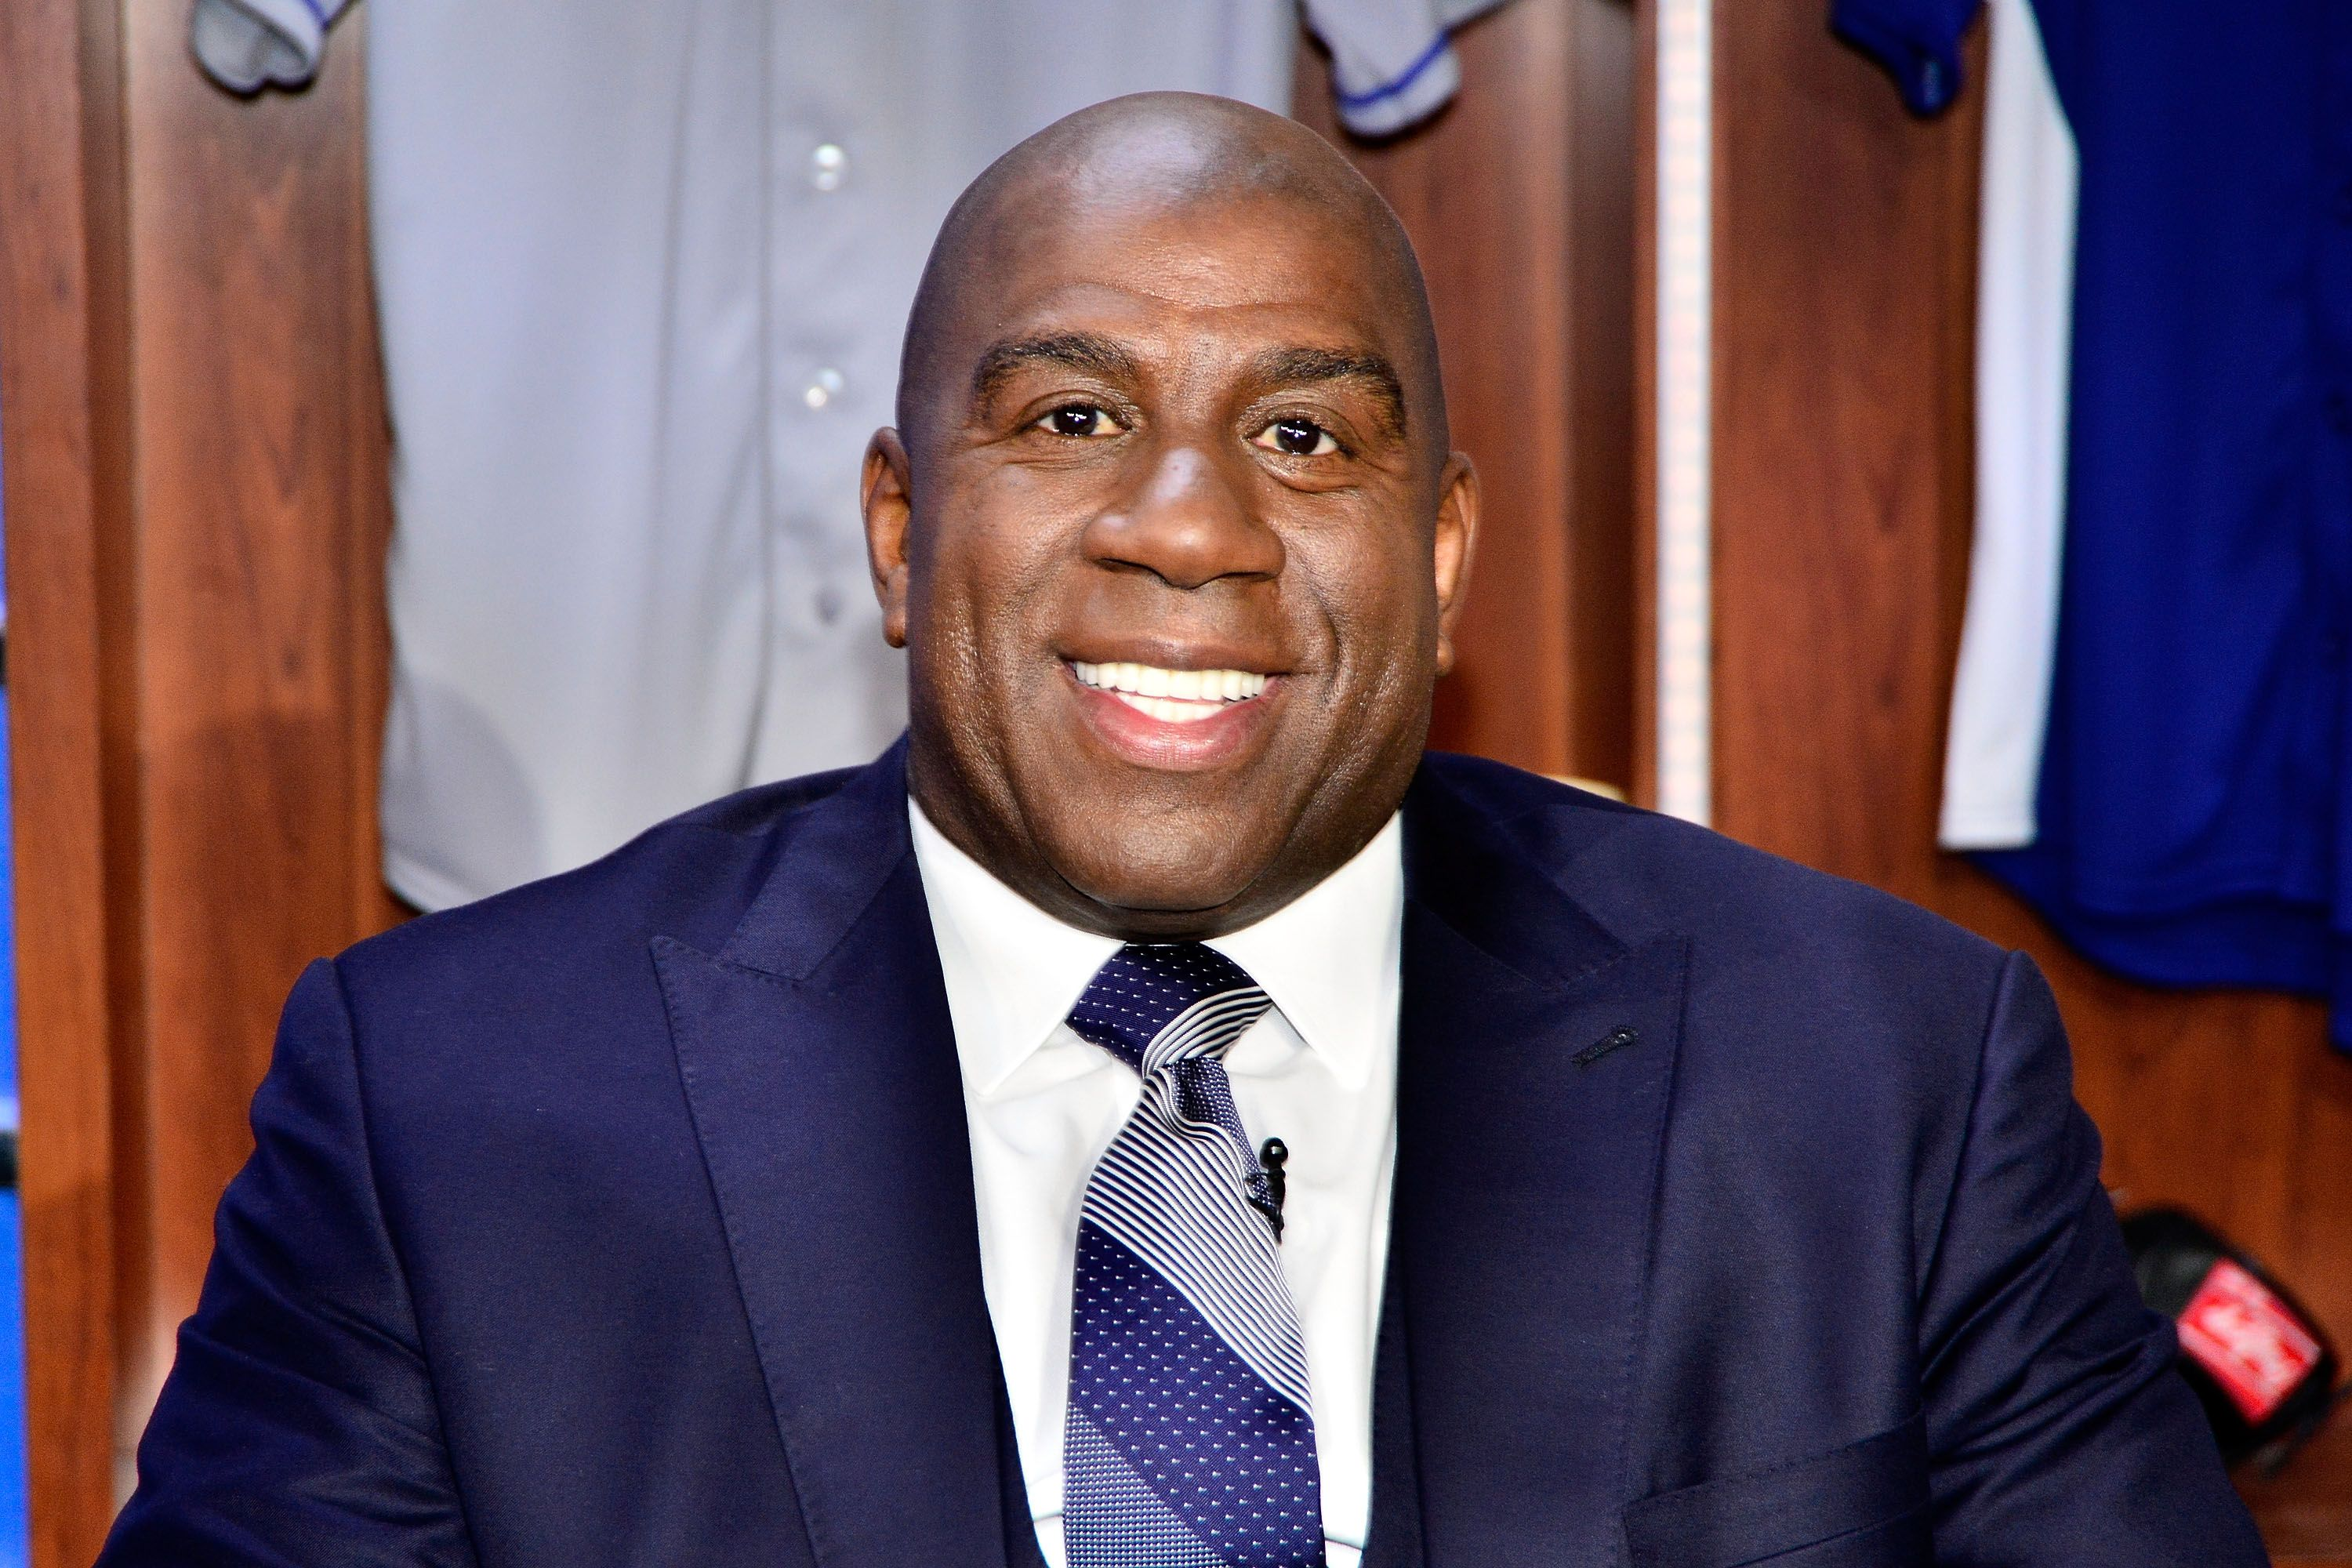 Earvin 'Magic' Johnson attends the launch of SportsNet LA on February 25, 2014  | Photo: Getty Images